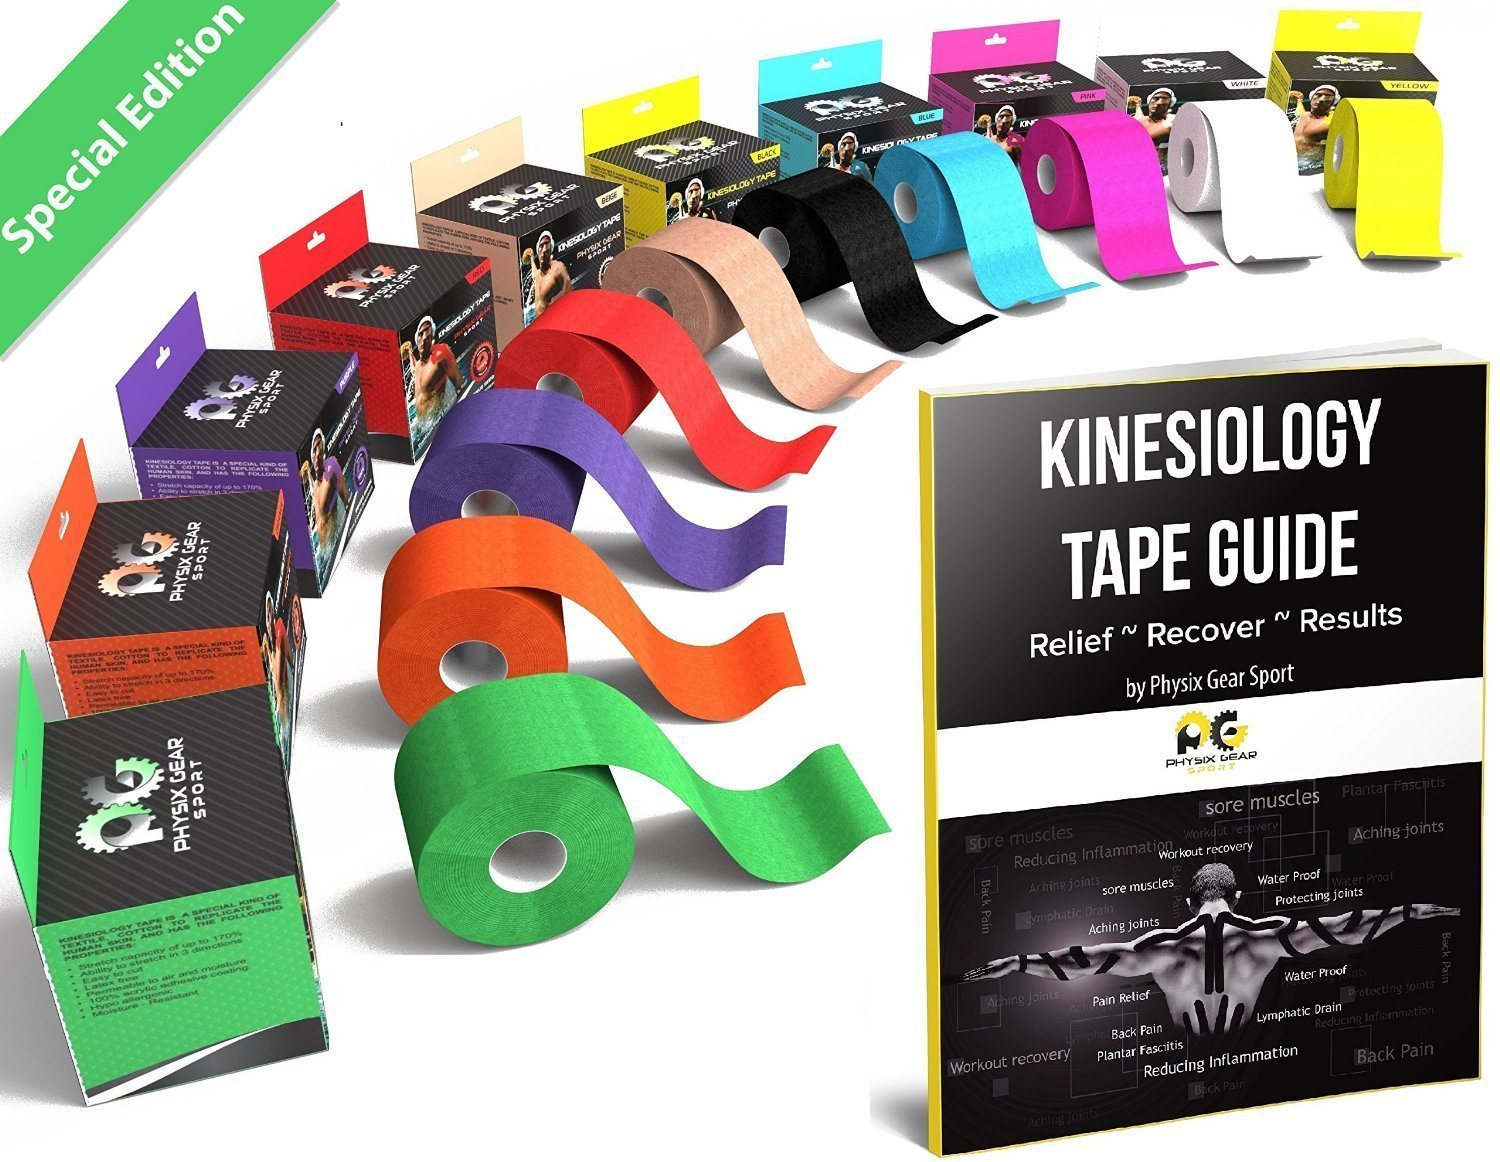 Physix Gear Sport Kinesiology Tape - Free Illustrated E-Guide - 16ft Uncut Roll - Best Pain Relief Adhesive for Muscles, Shin Splints Knee & Shoulder - 24/7 Waterproof Therapeutic Aid (1PK GRN)